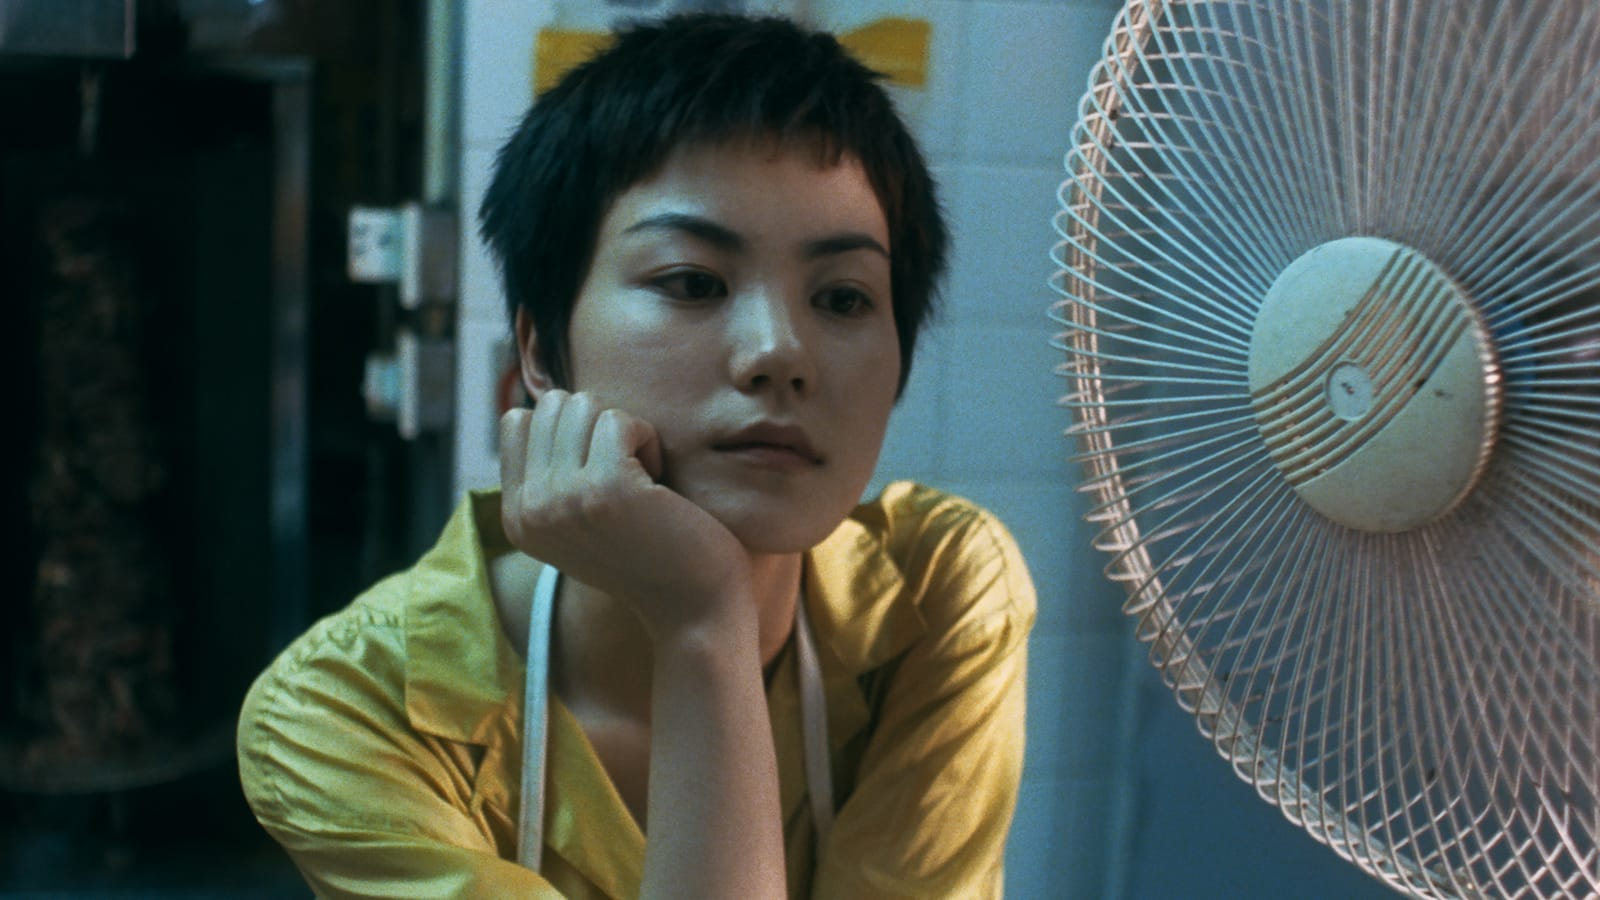 Chungking Express | A whirling tale of 1990s Hong Kong